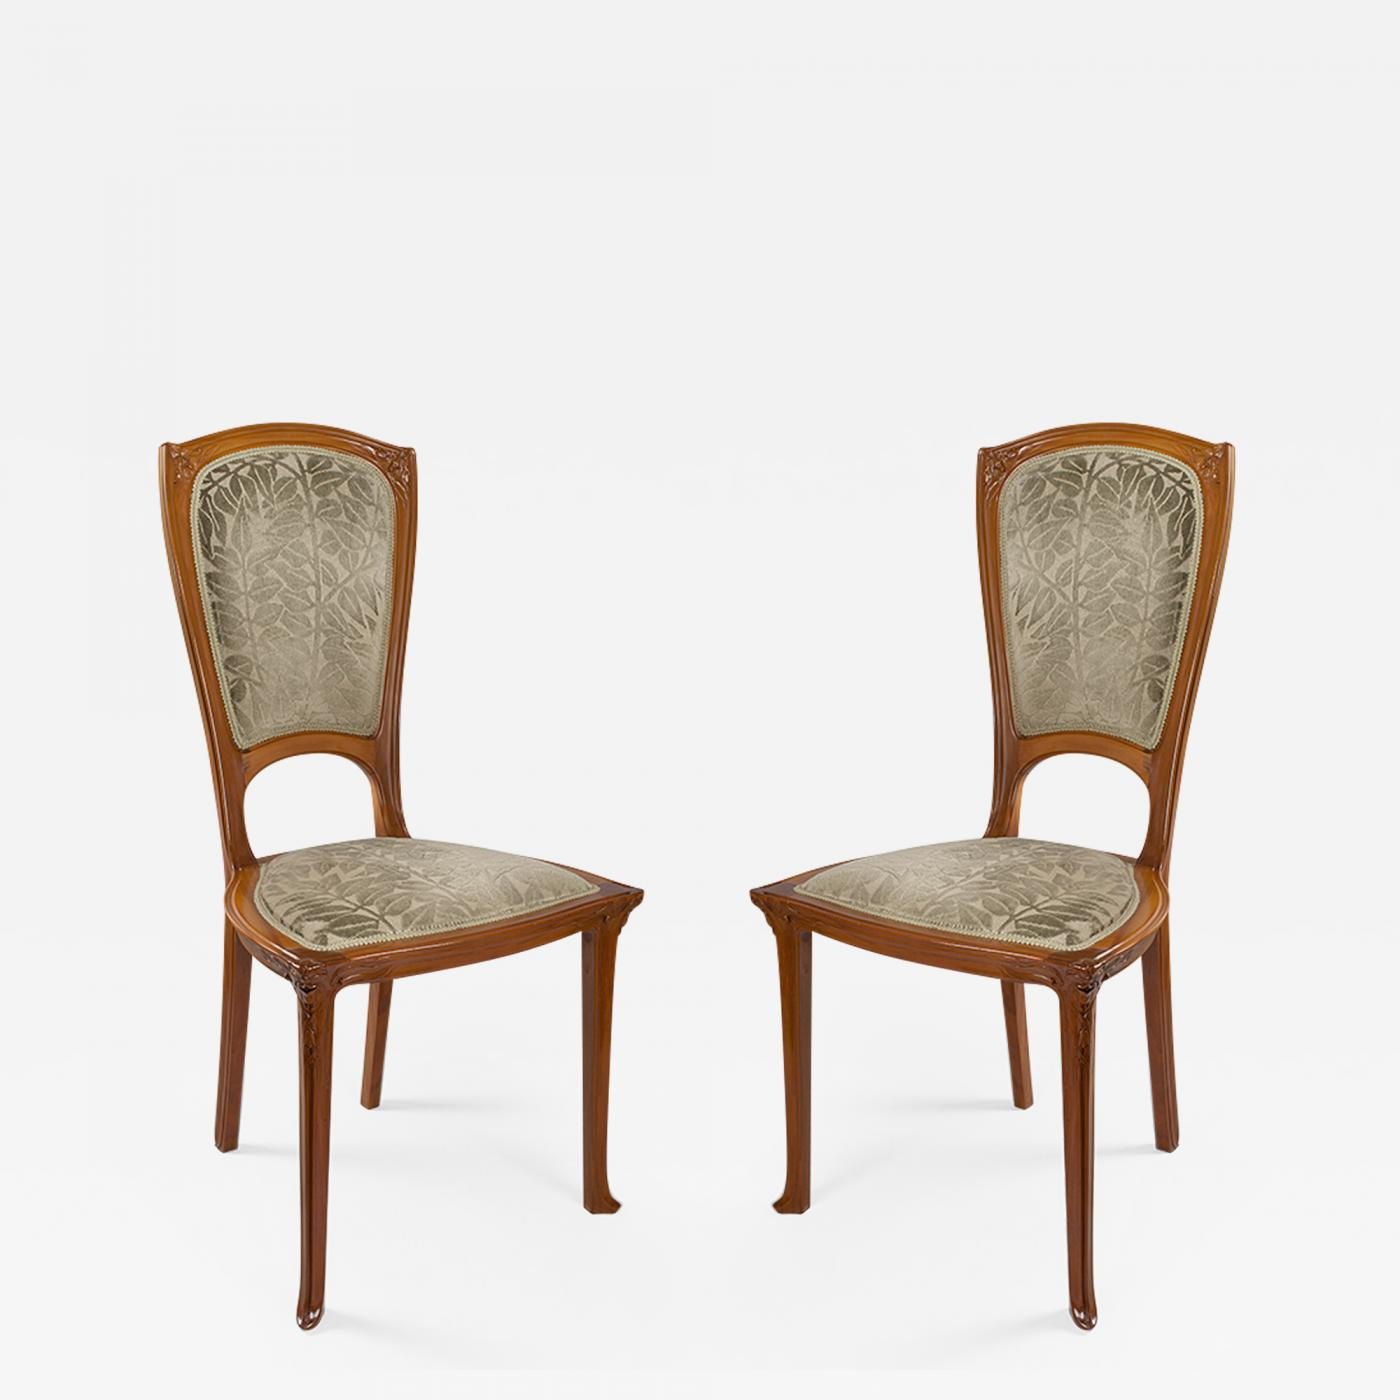 Gauthier Poinsignon French Art Nouveau Chairs By Gauthier